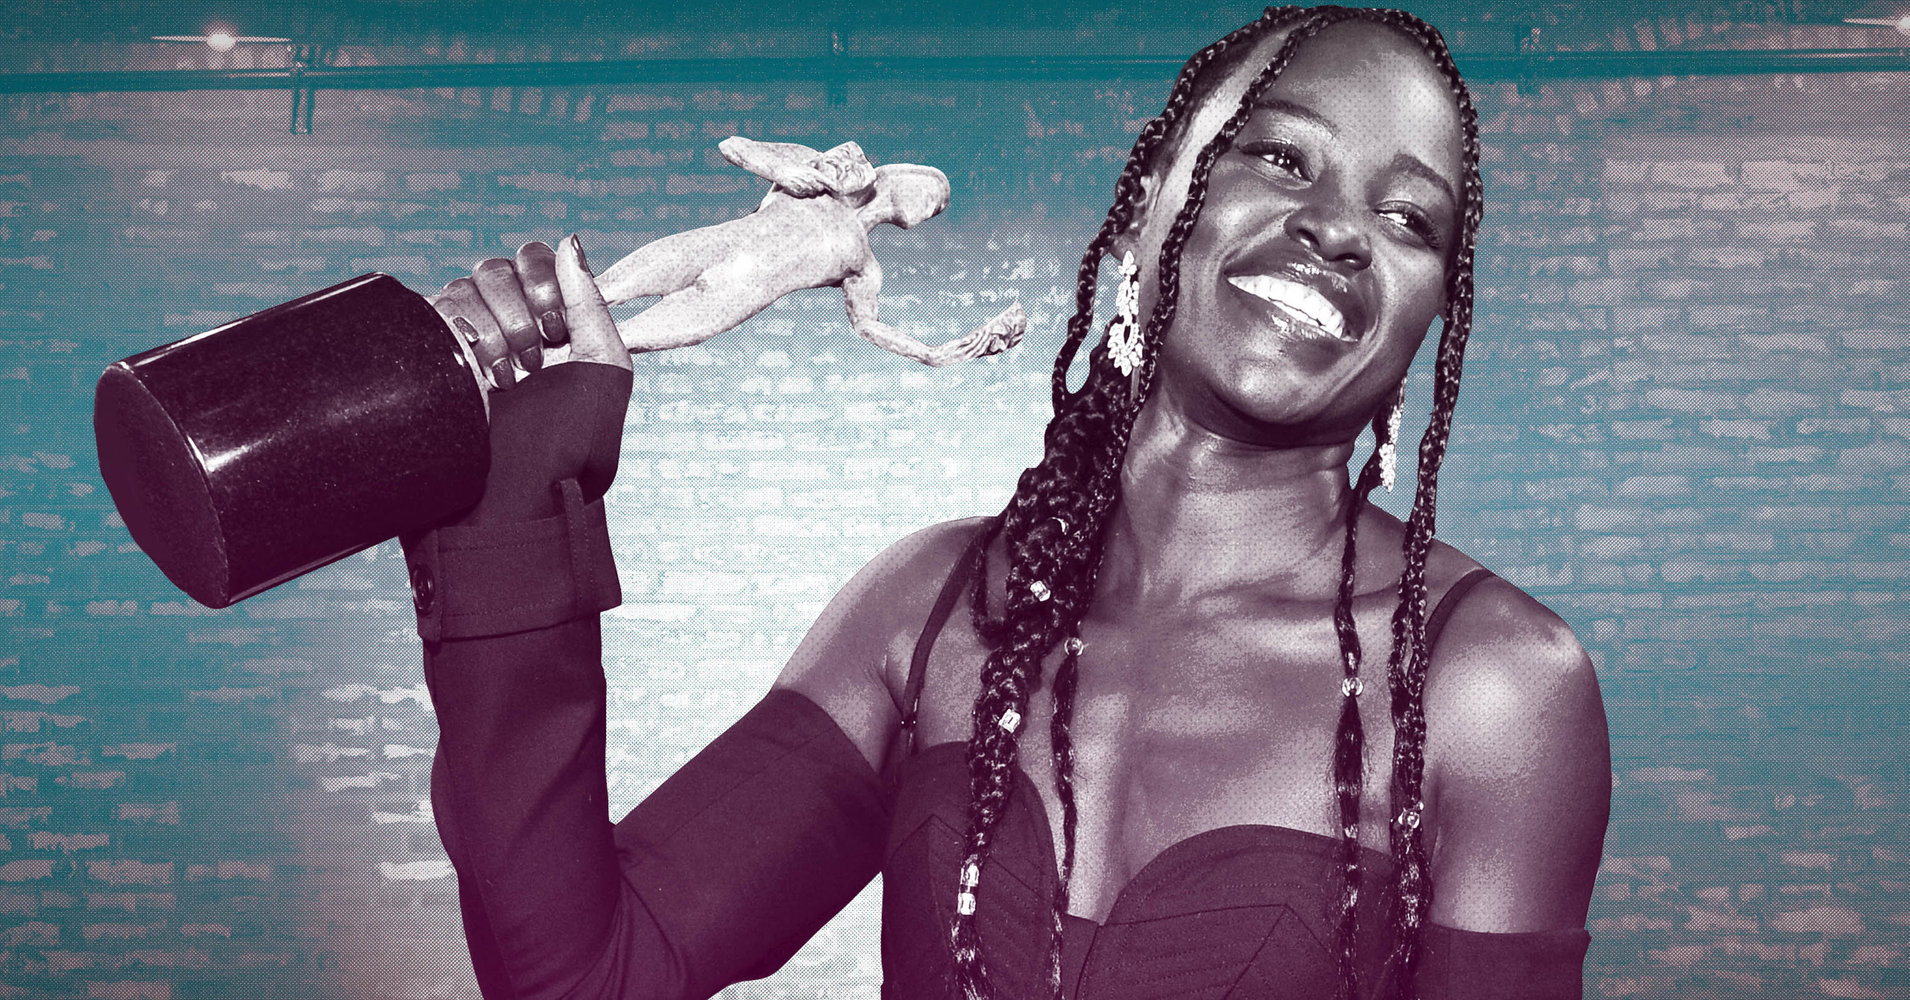 In Order To Fight Zombies, Lupita Nyong'o Wrote A Letter To Taylor Swift